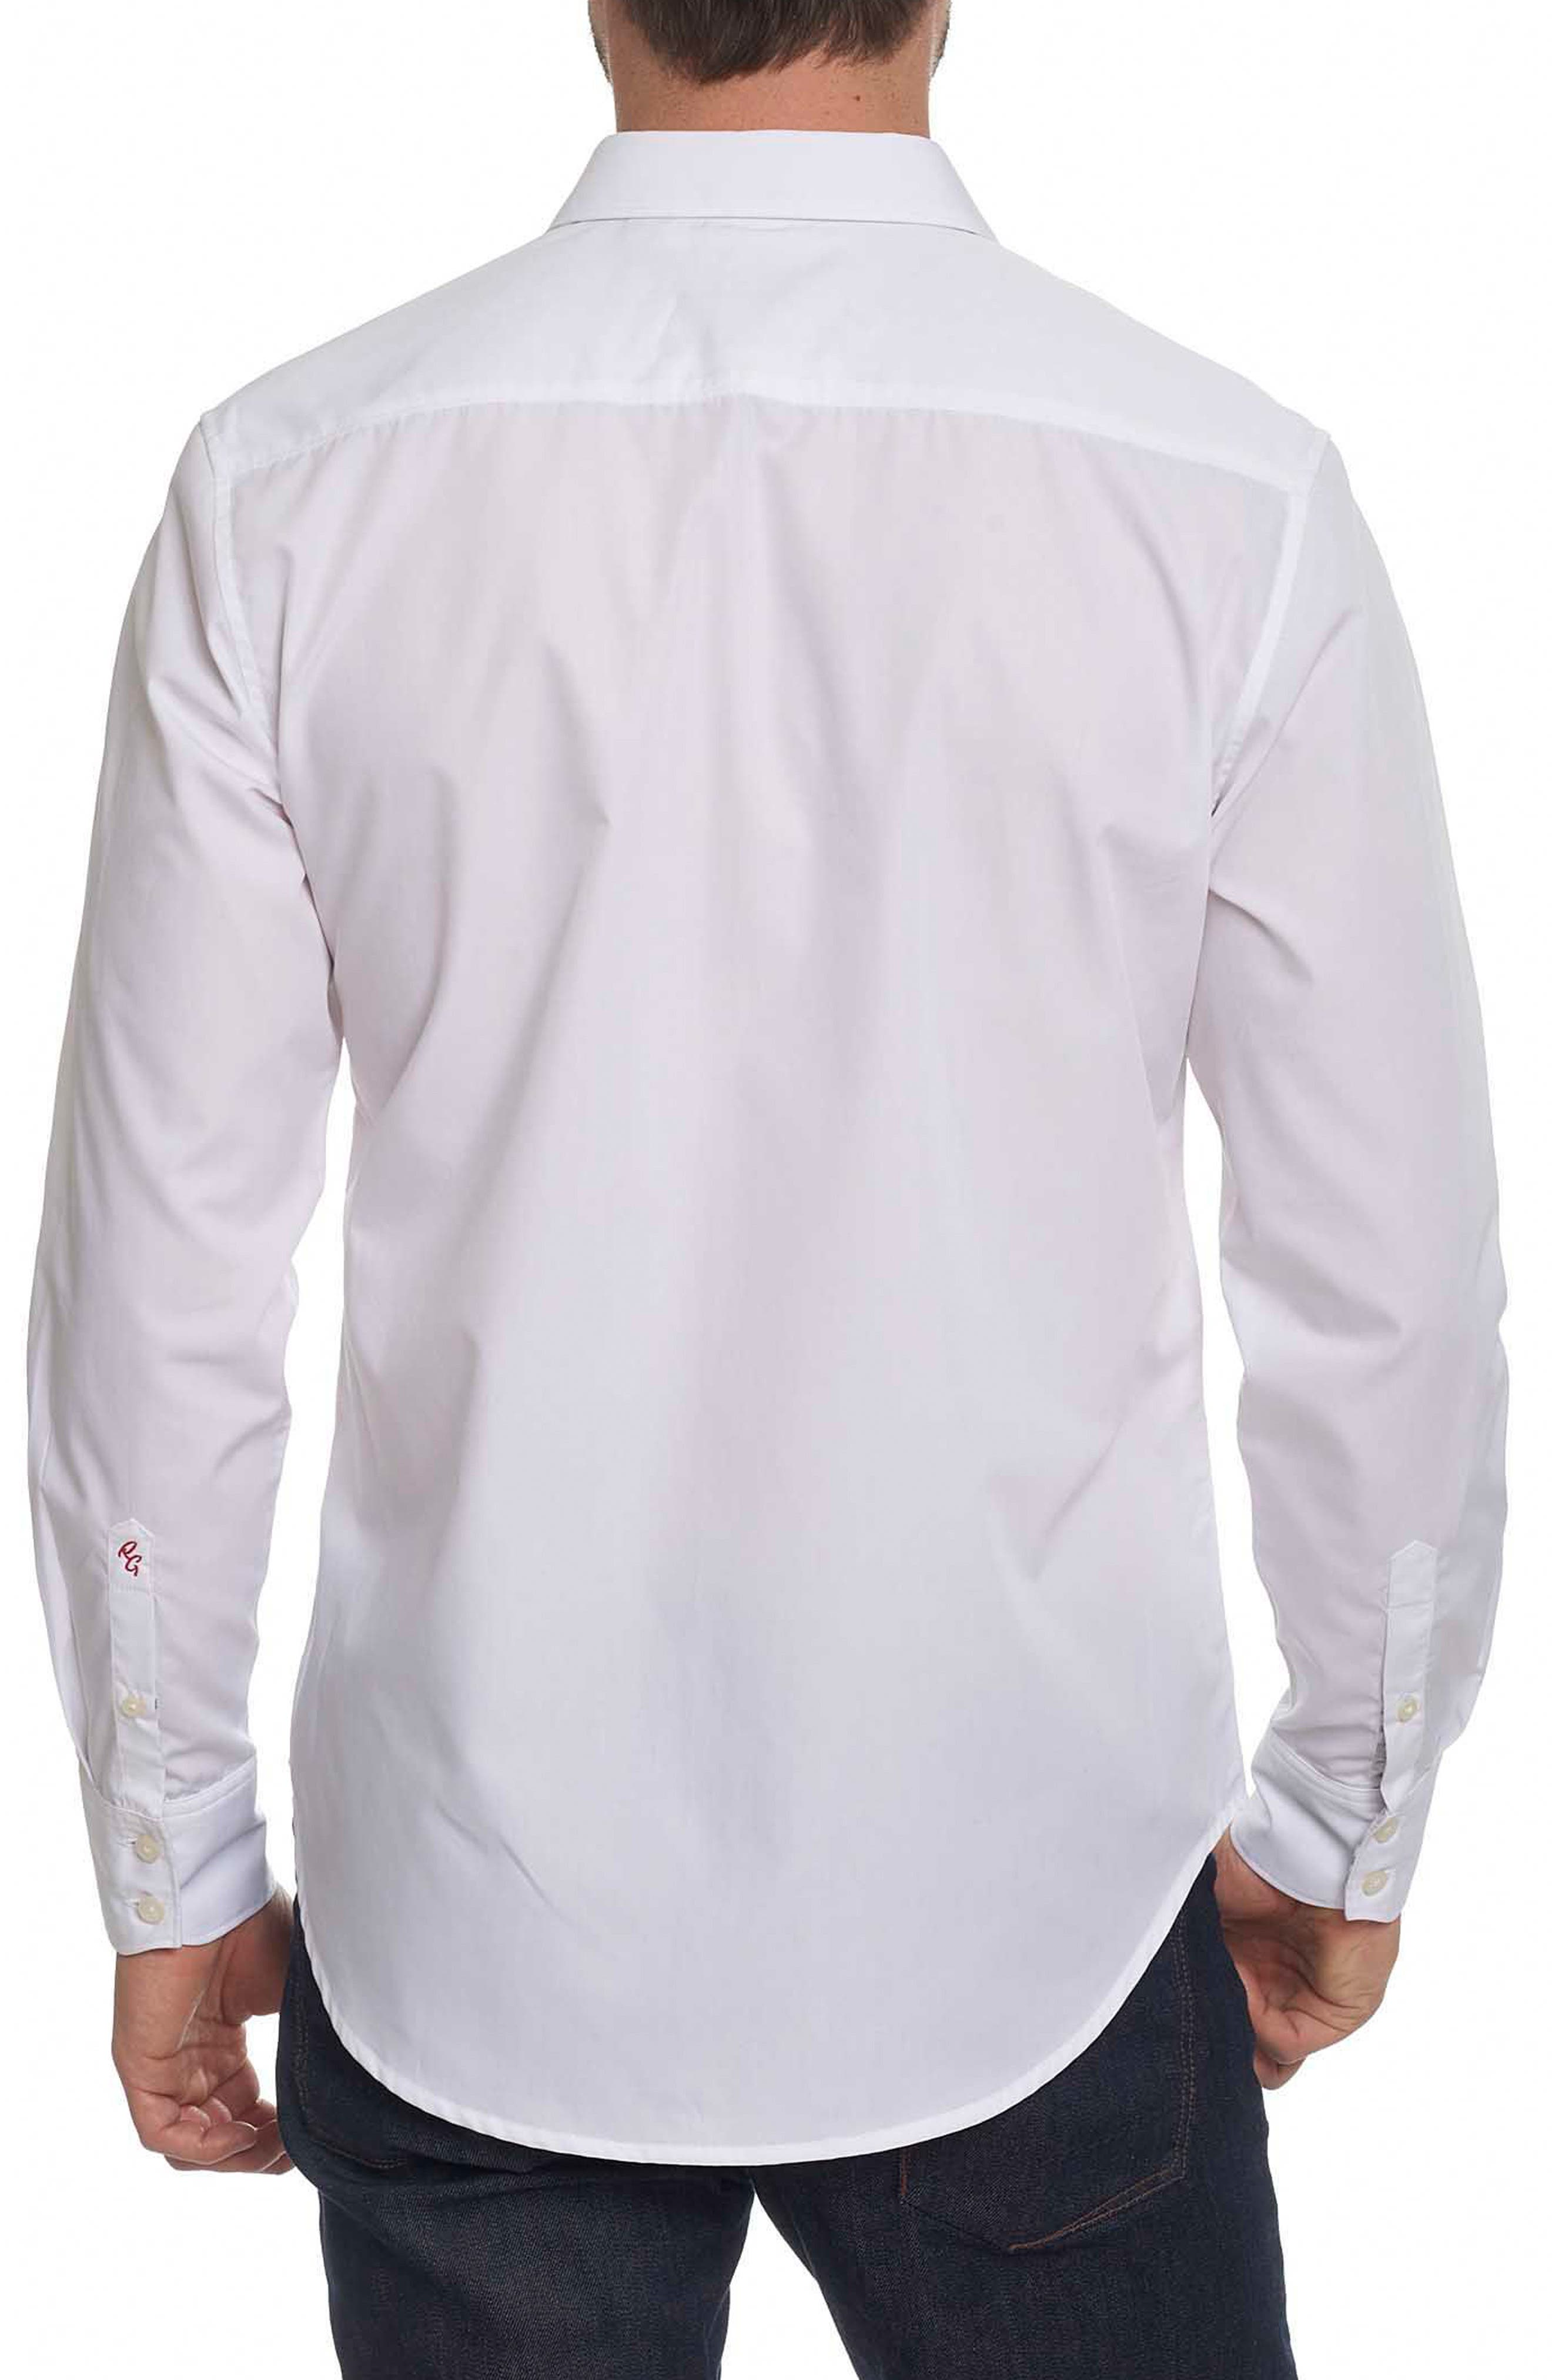 Onyx Classic Fit Embroidered Sport Shirt,                             Alternate thumbnail 3, color,                             White